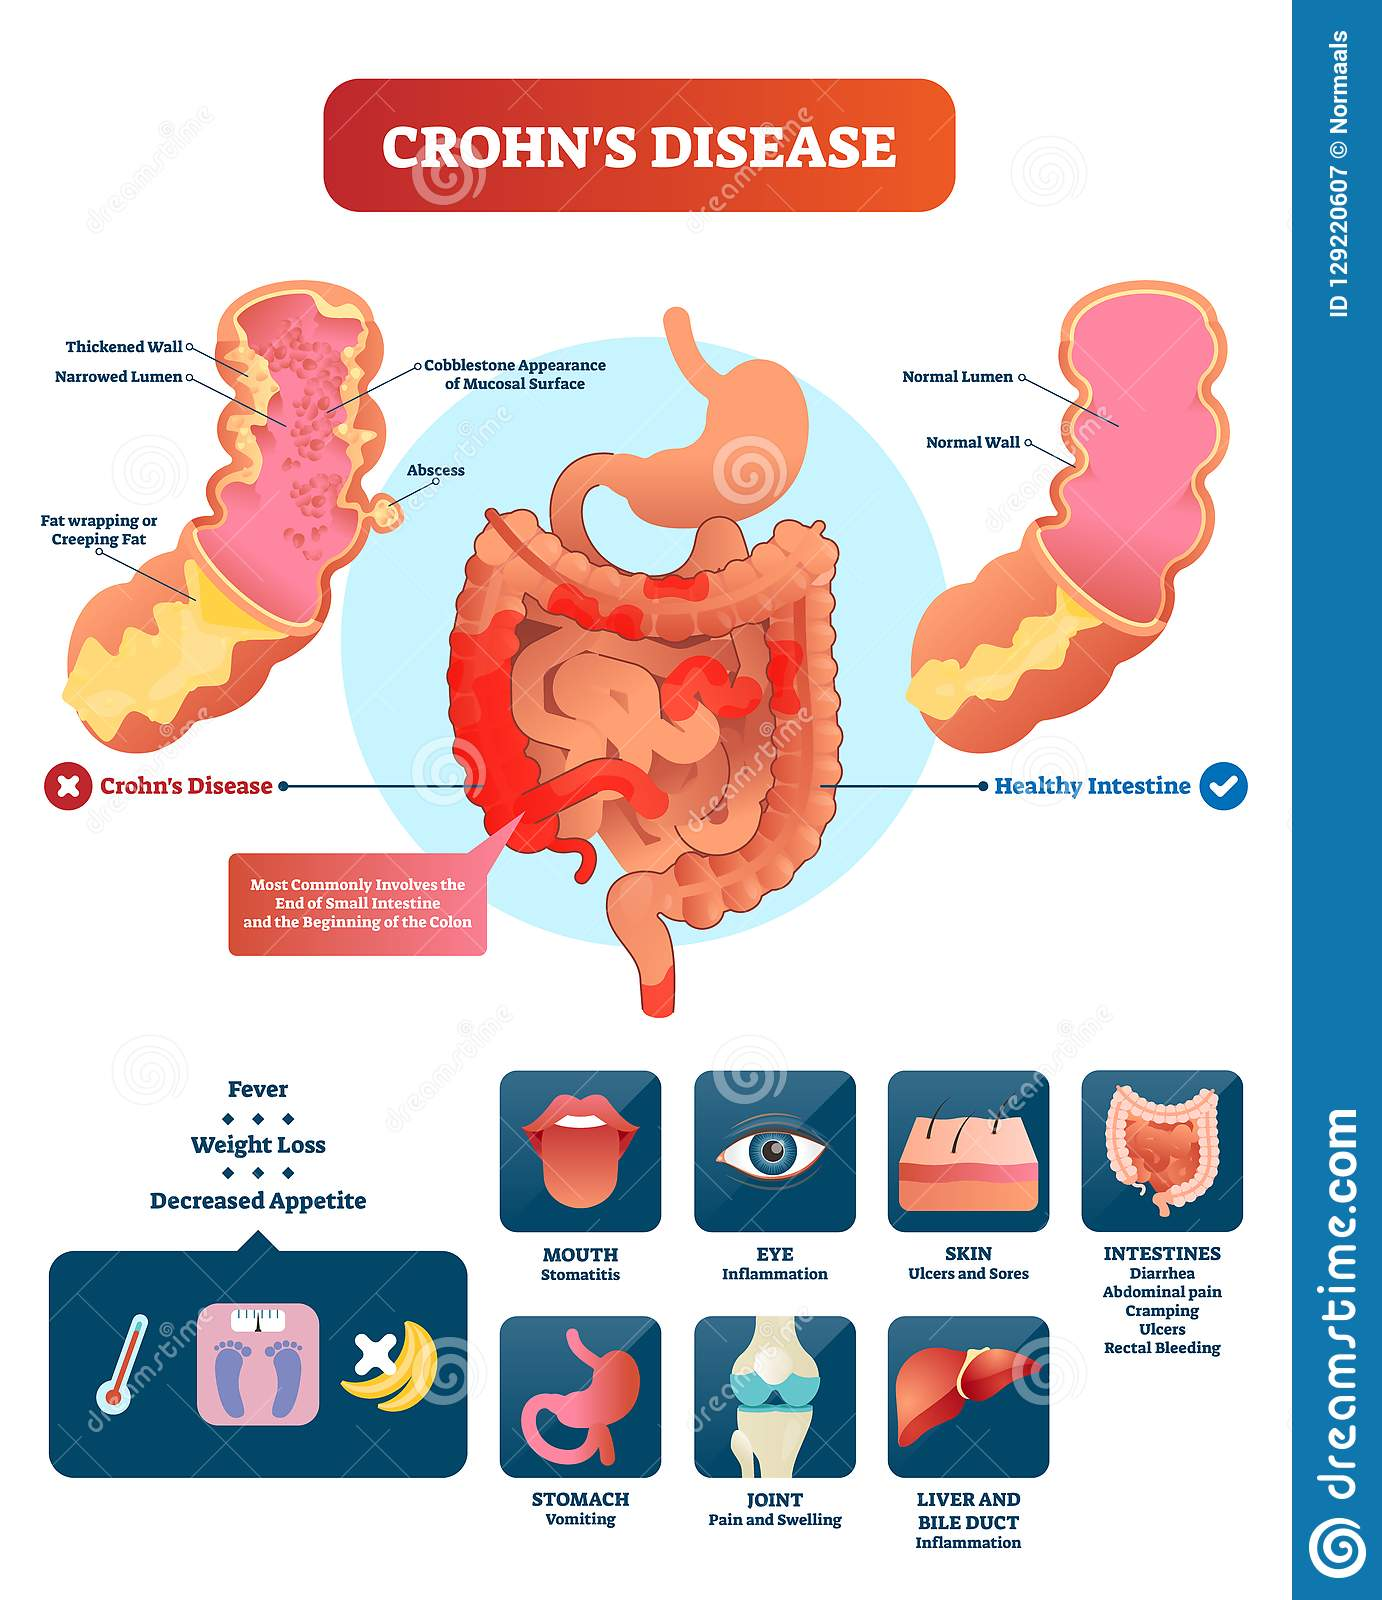 hight resolution of crohns disease vector illustration labeled diagram with diagnosiscrohns disease vector illustration labeled diagram with diagnosis